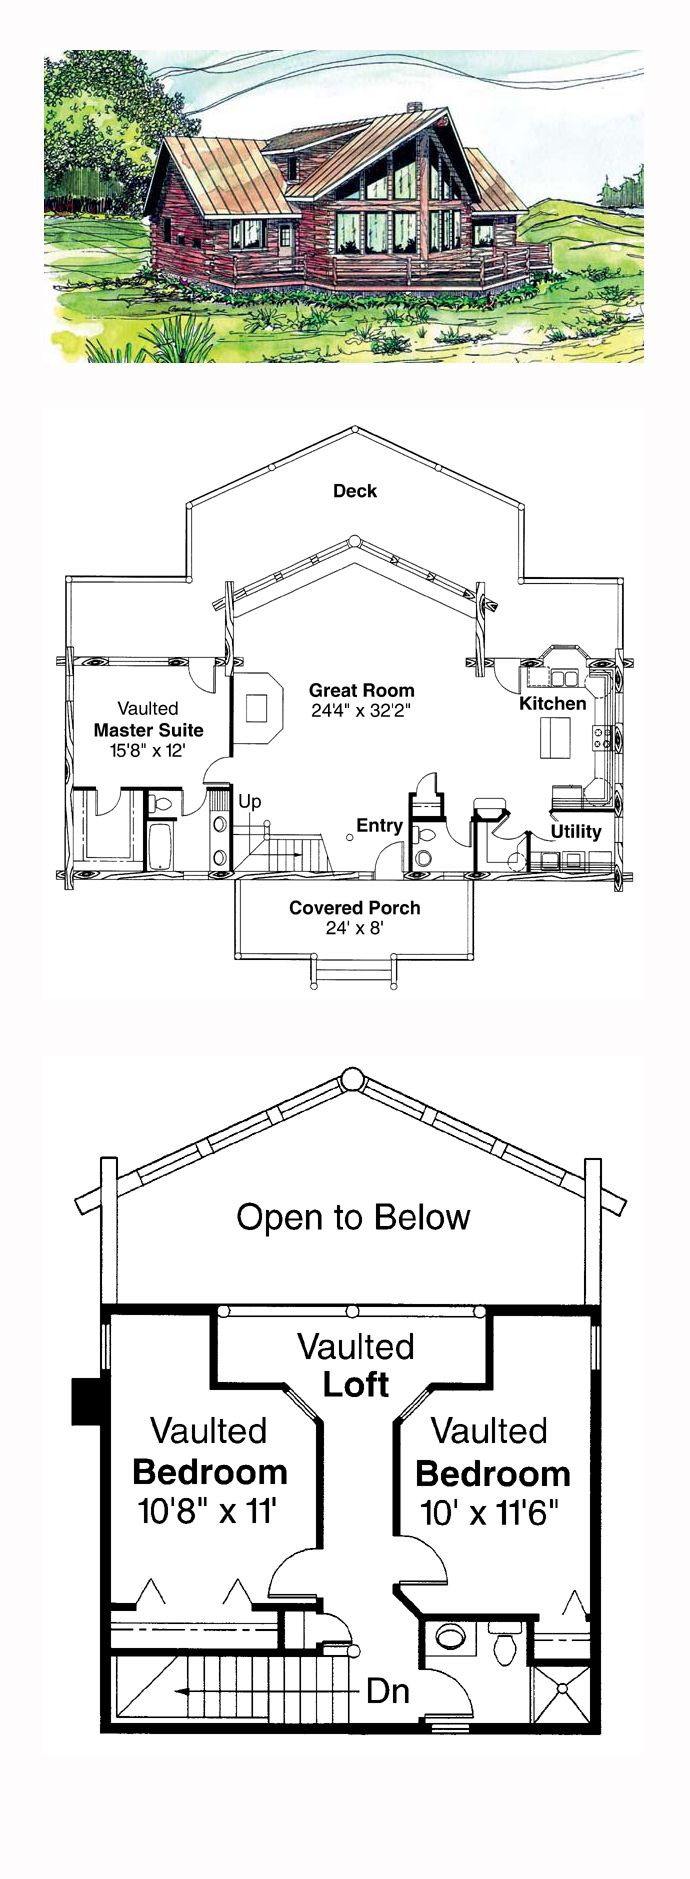 Log House Plan 69362 | Total Living Area: 1987 sq. ft., 3 bedrooms and 2.5 bathrooms. #loghome